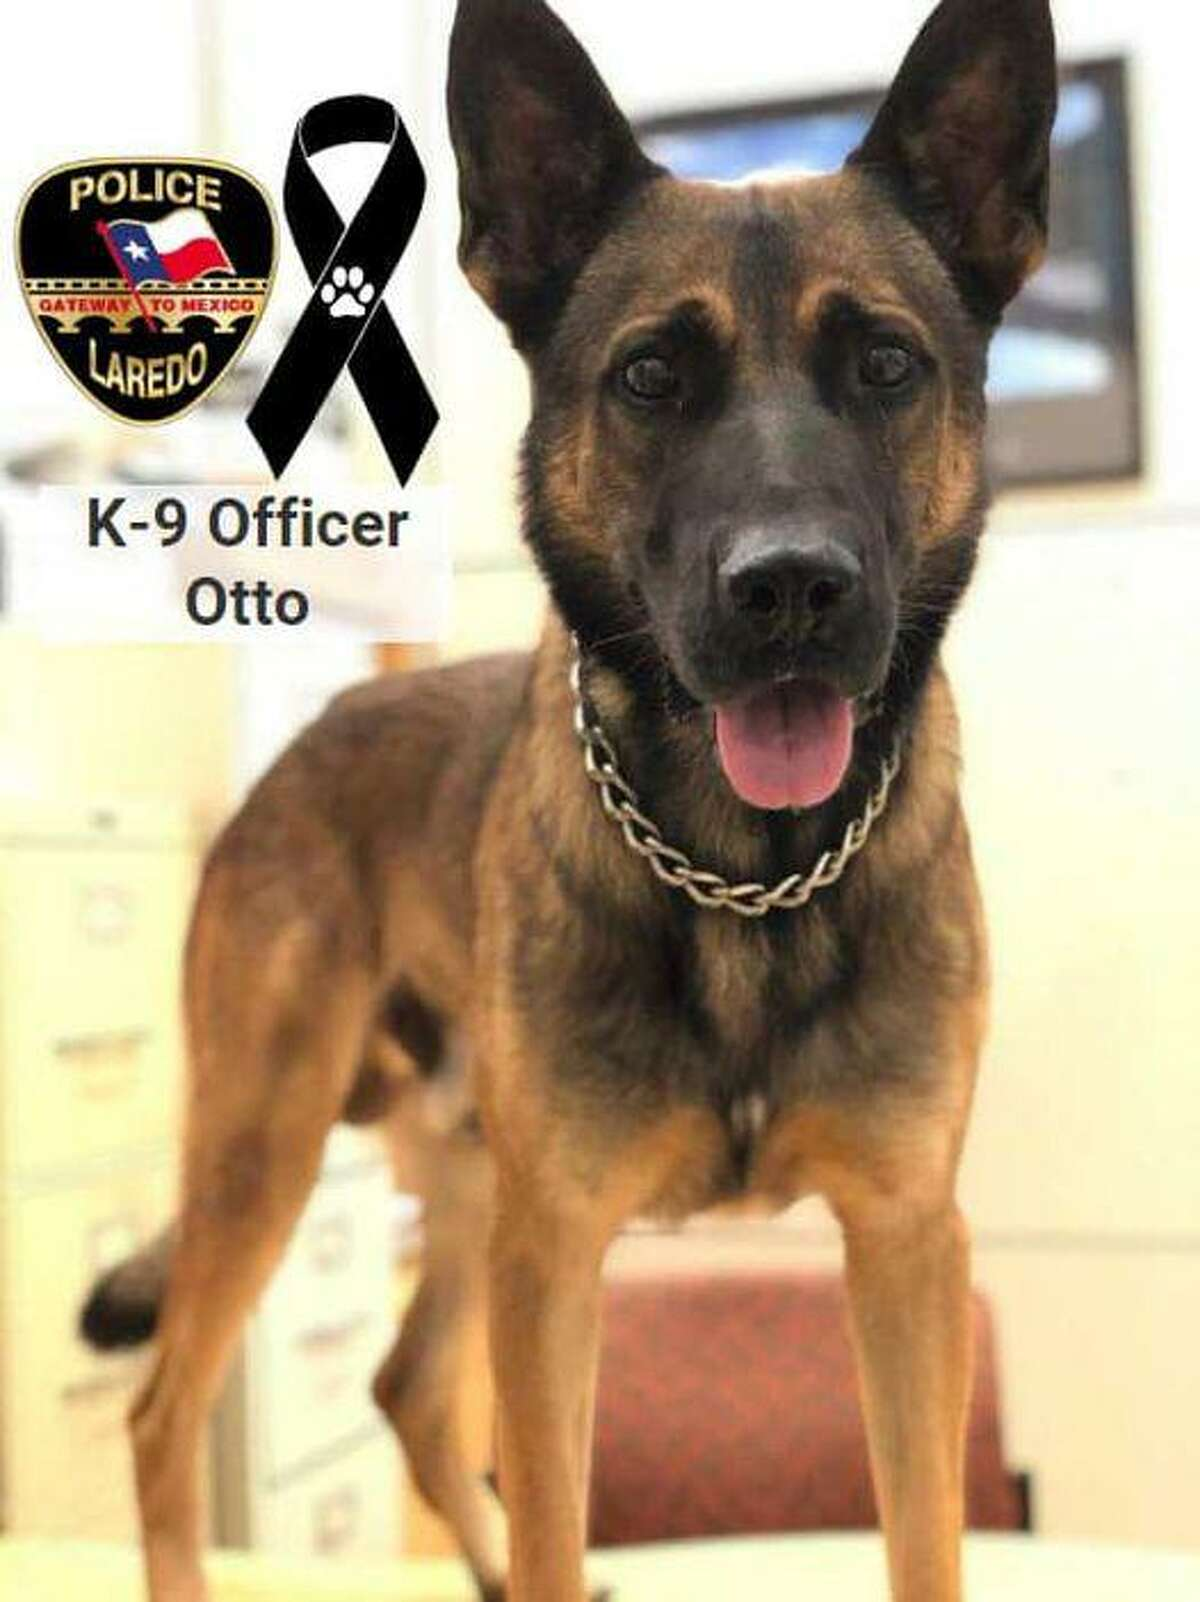 Laredo police announced on Thursday the death of Otto, one of its canine officers.